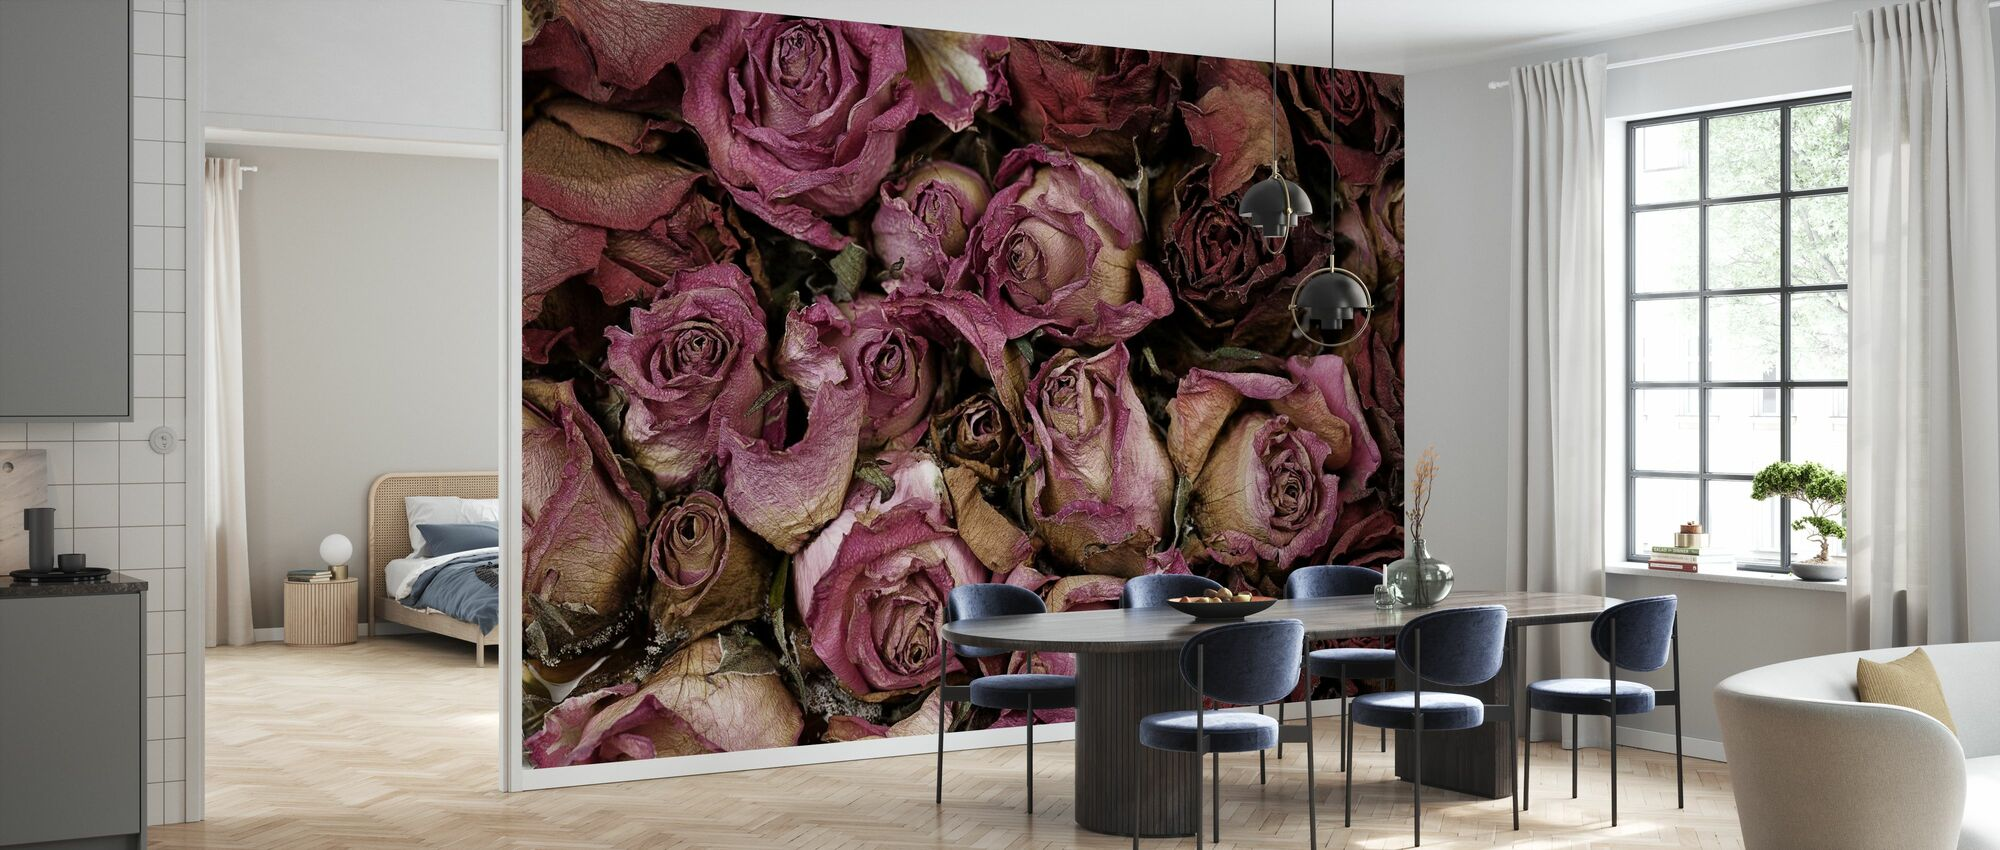 Dried Roses - Wallpaper - Kitchen